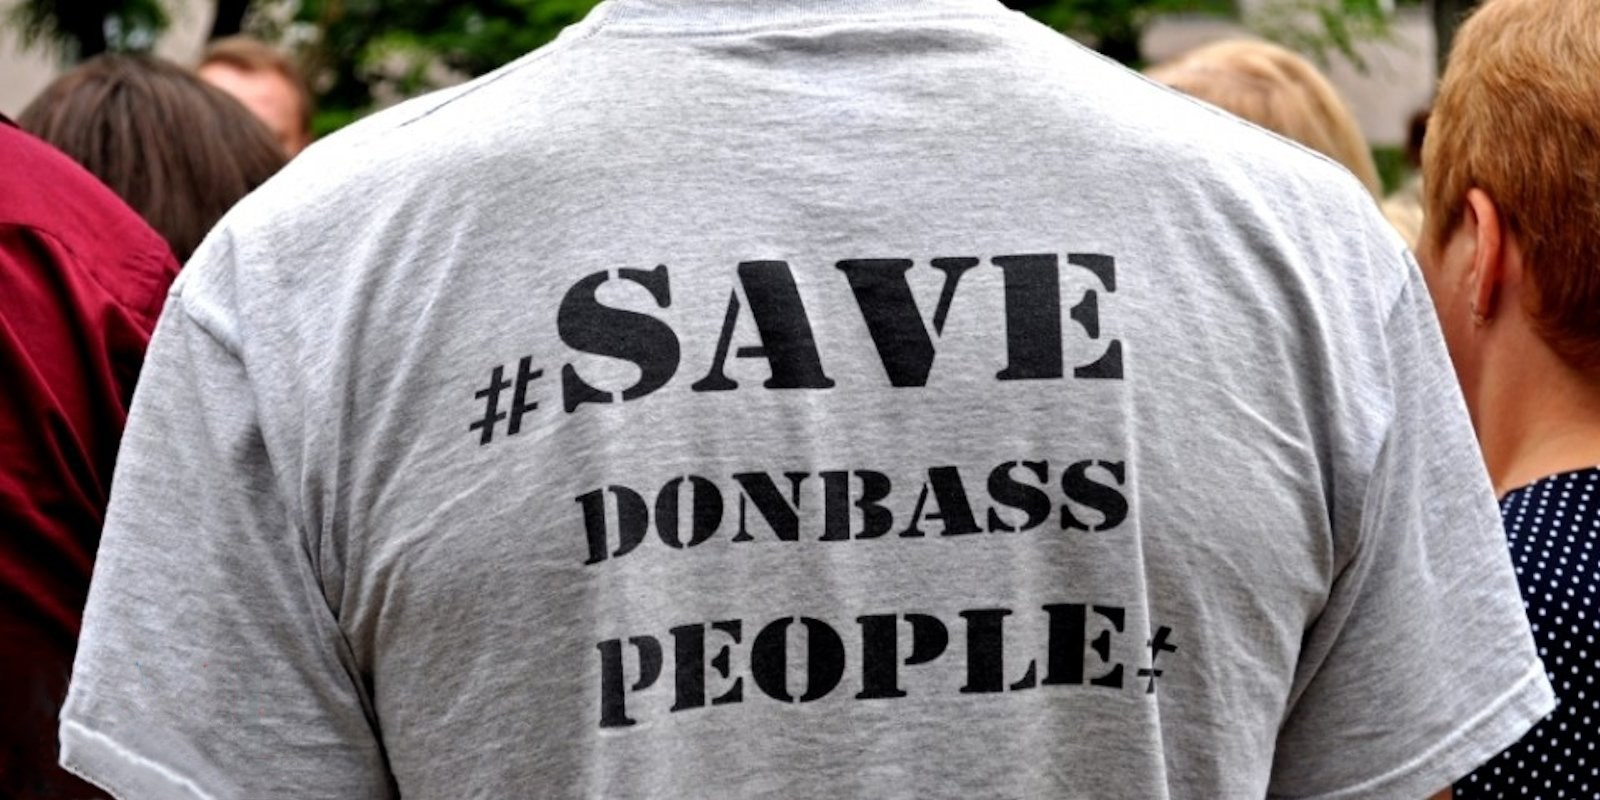 00 save donbass people 040915